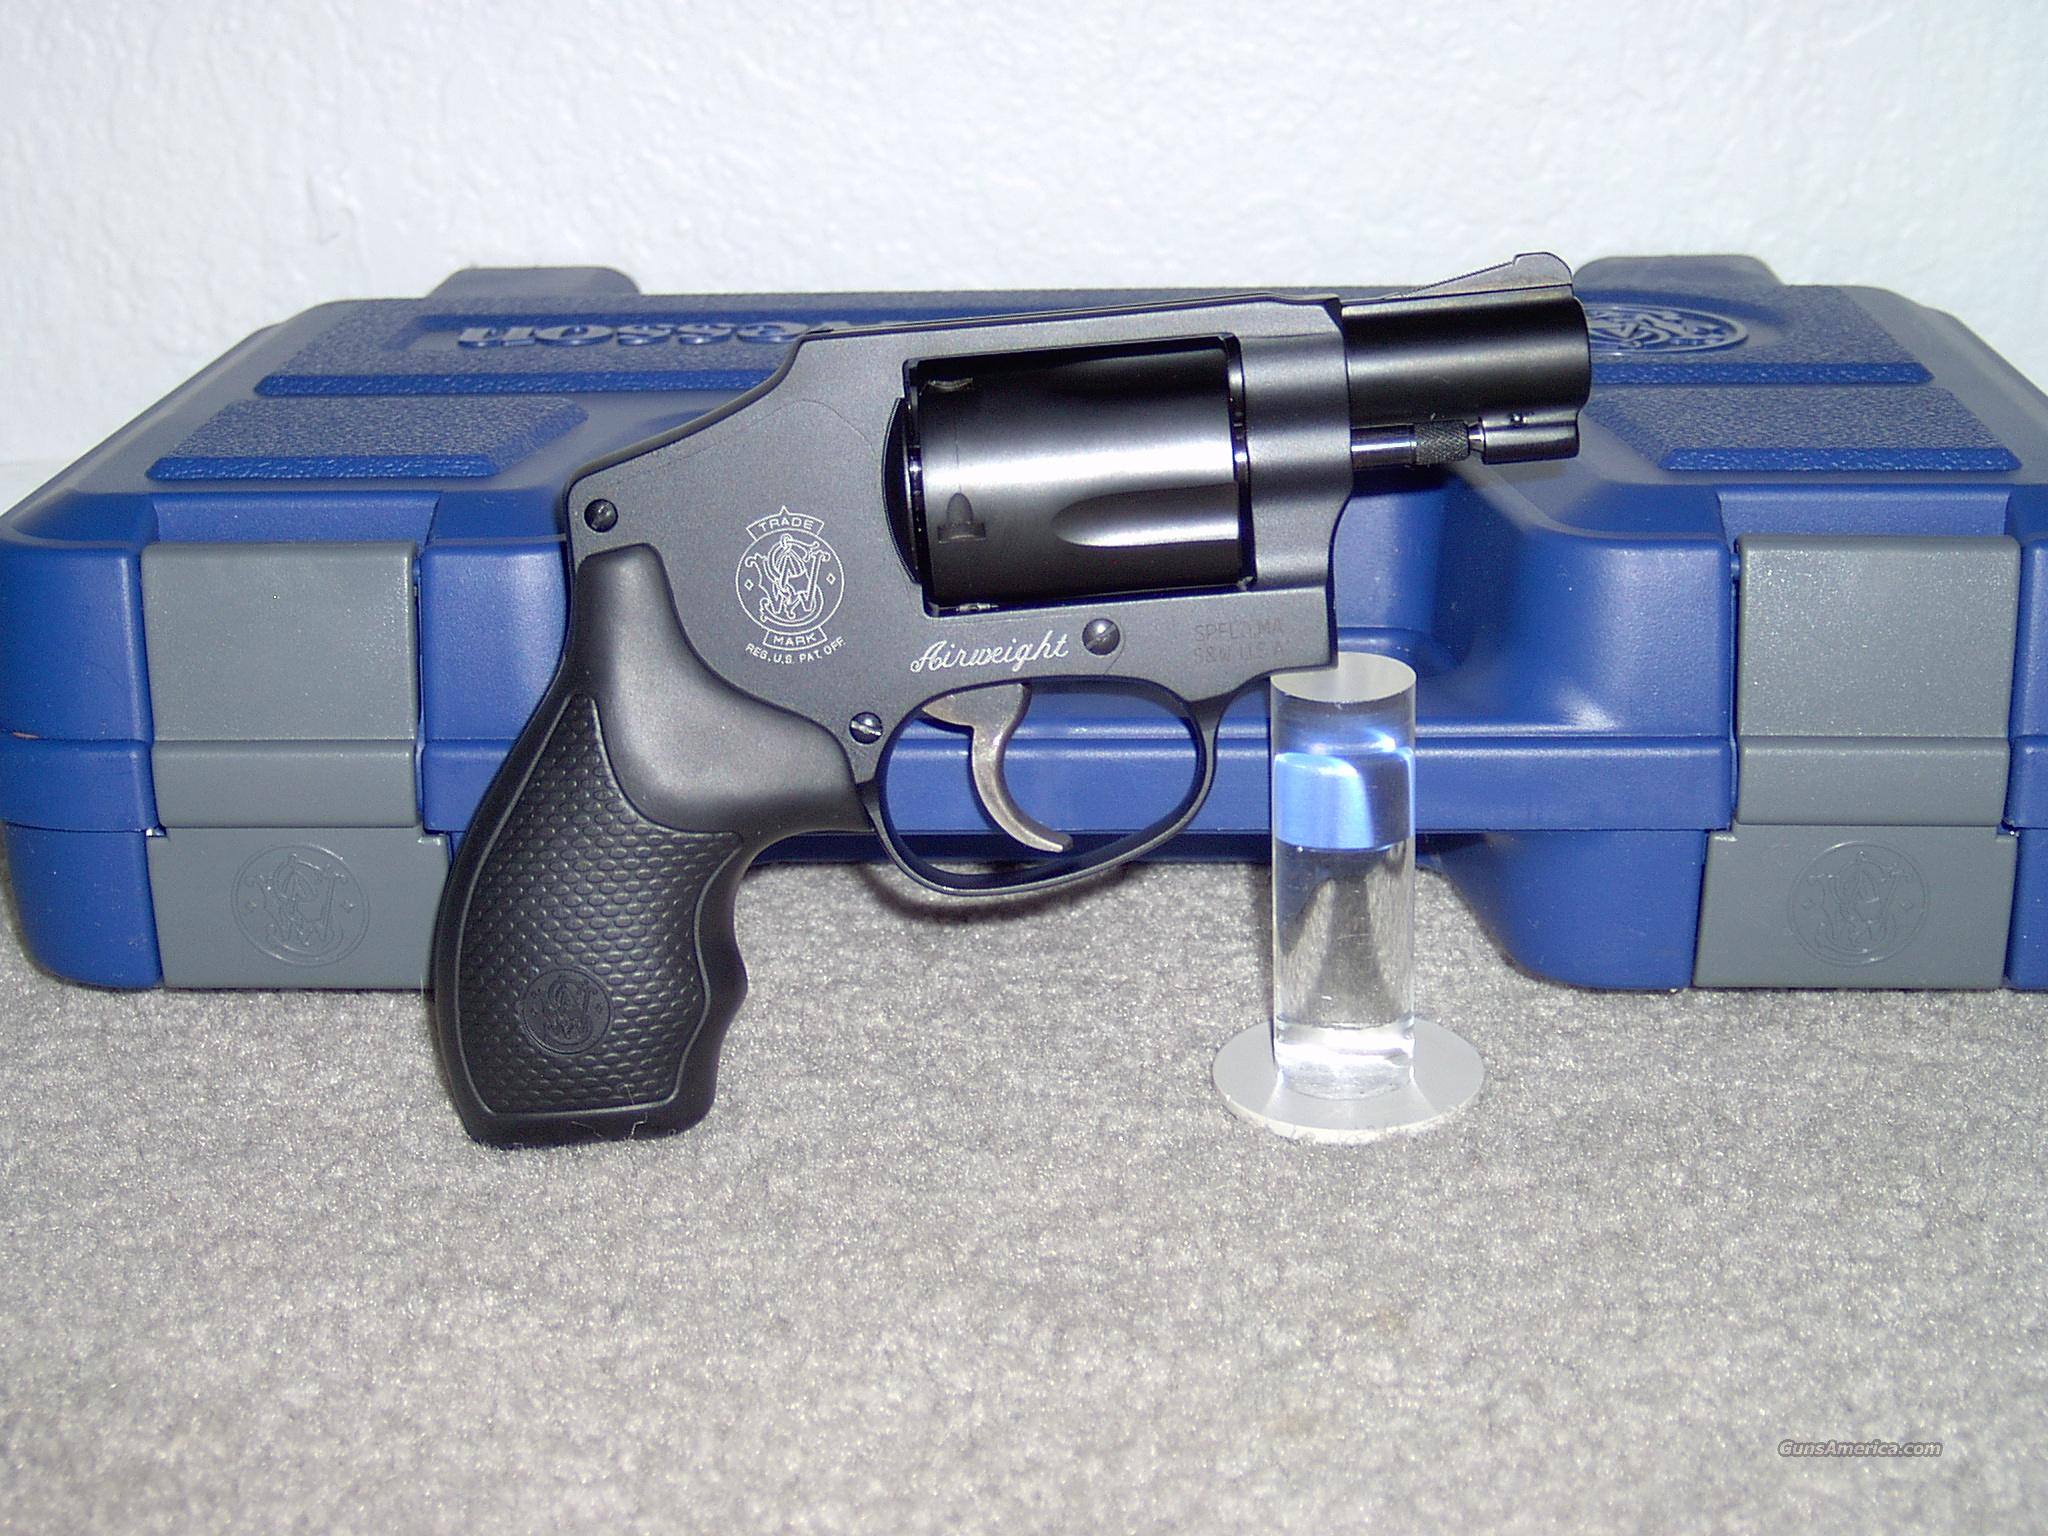 Smith & Wesson Model 442 .38 Special  Guns > Pistols > Smith & Wesson Revolvers > Pocket Pistols